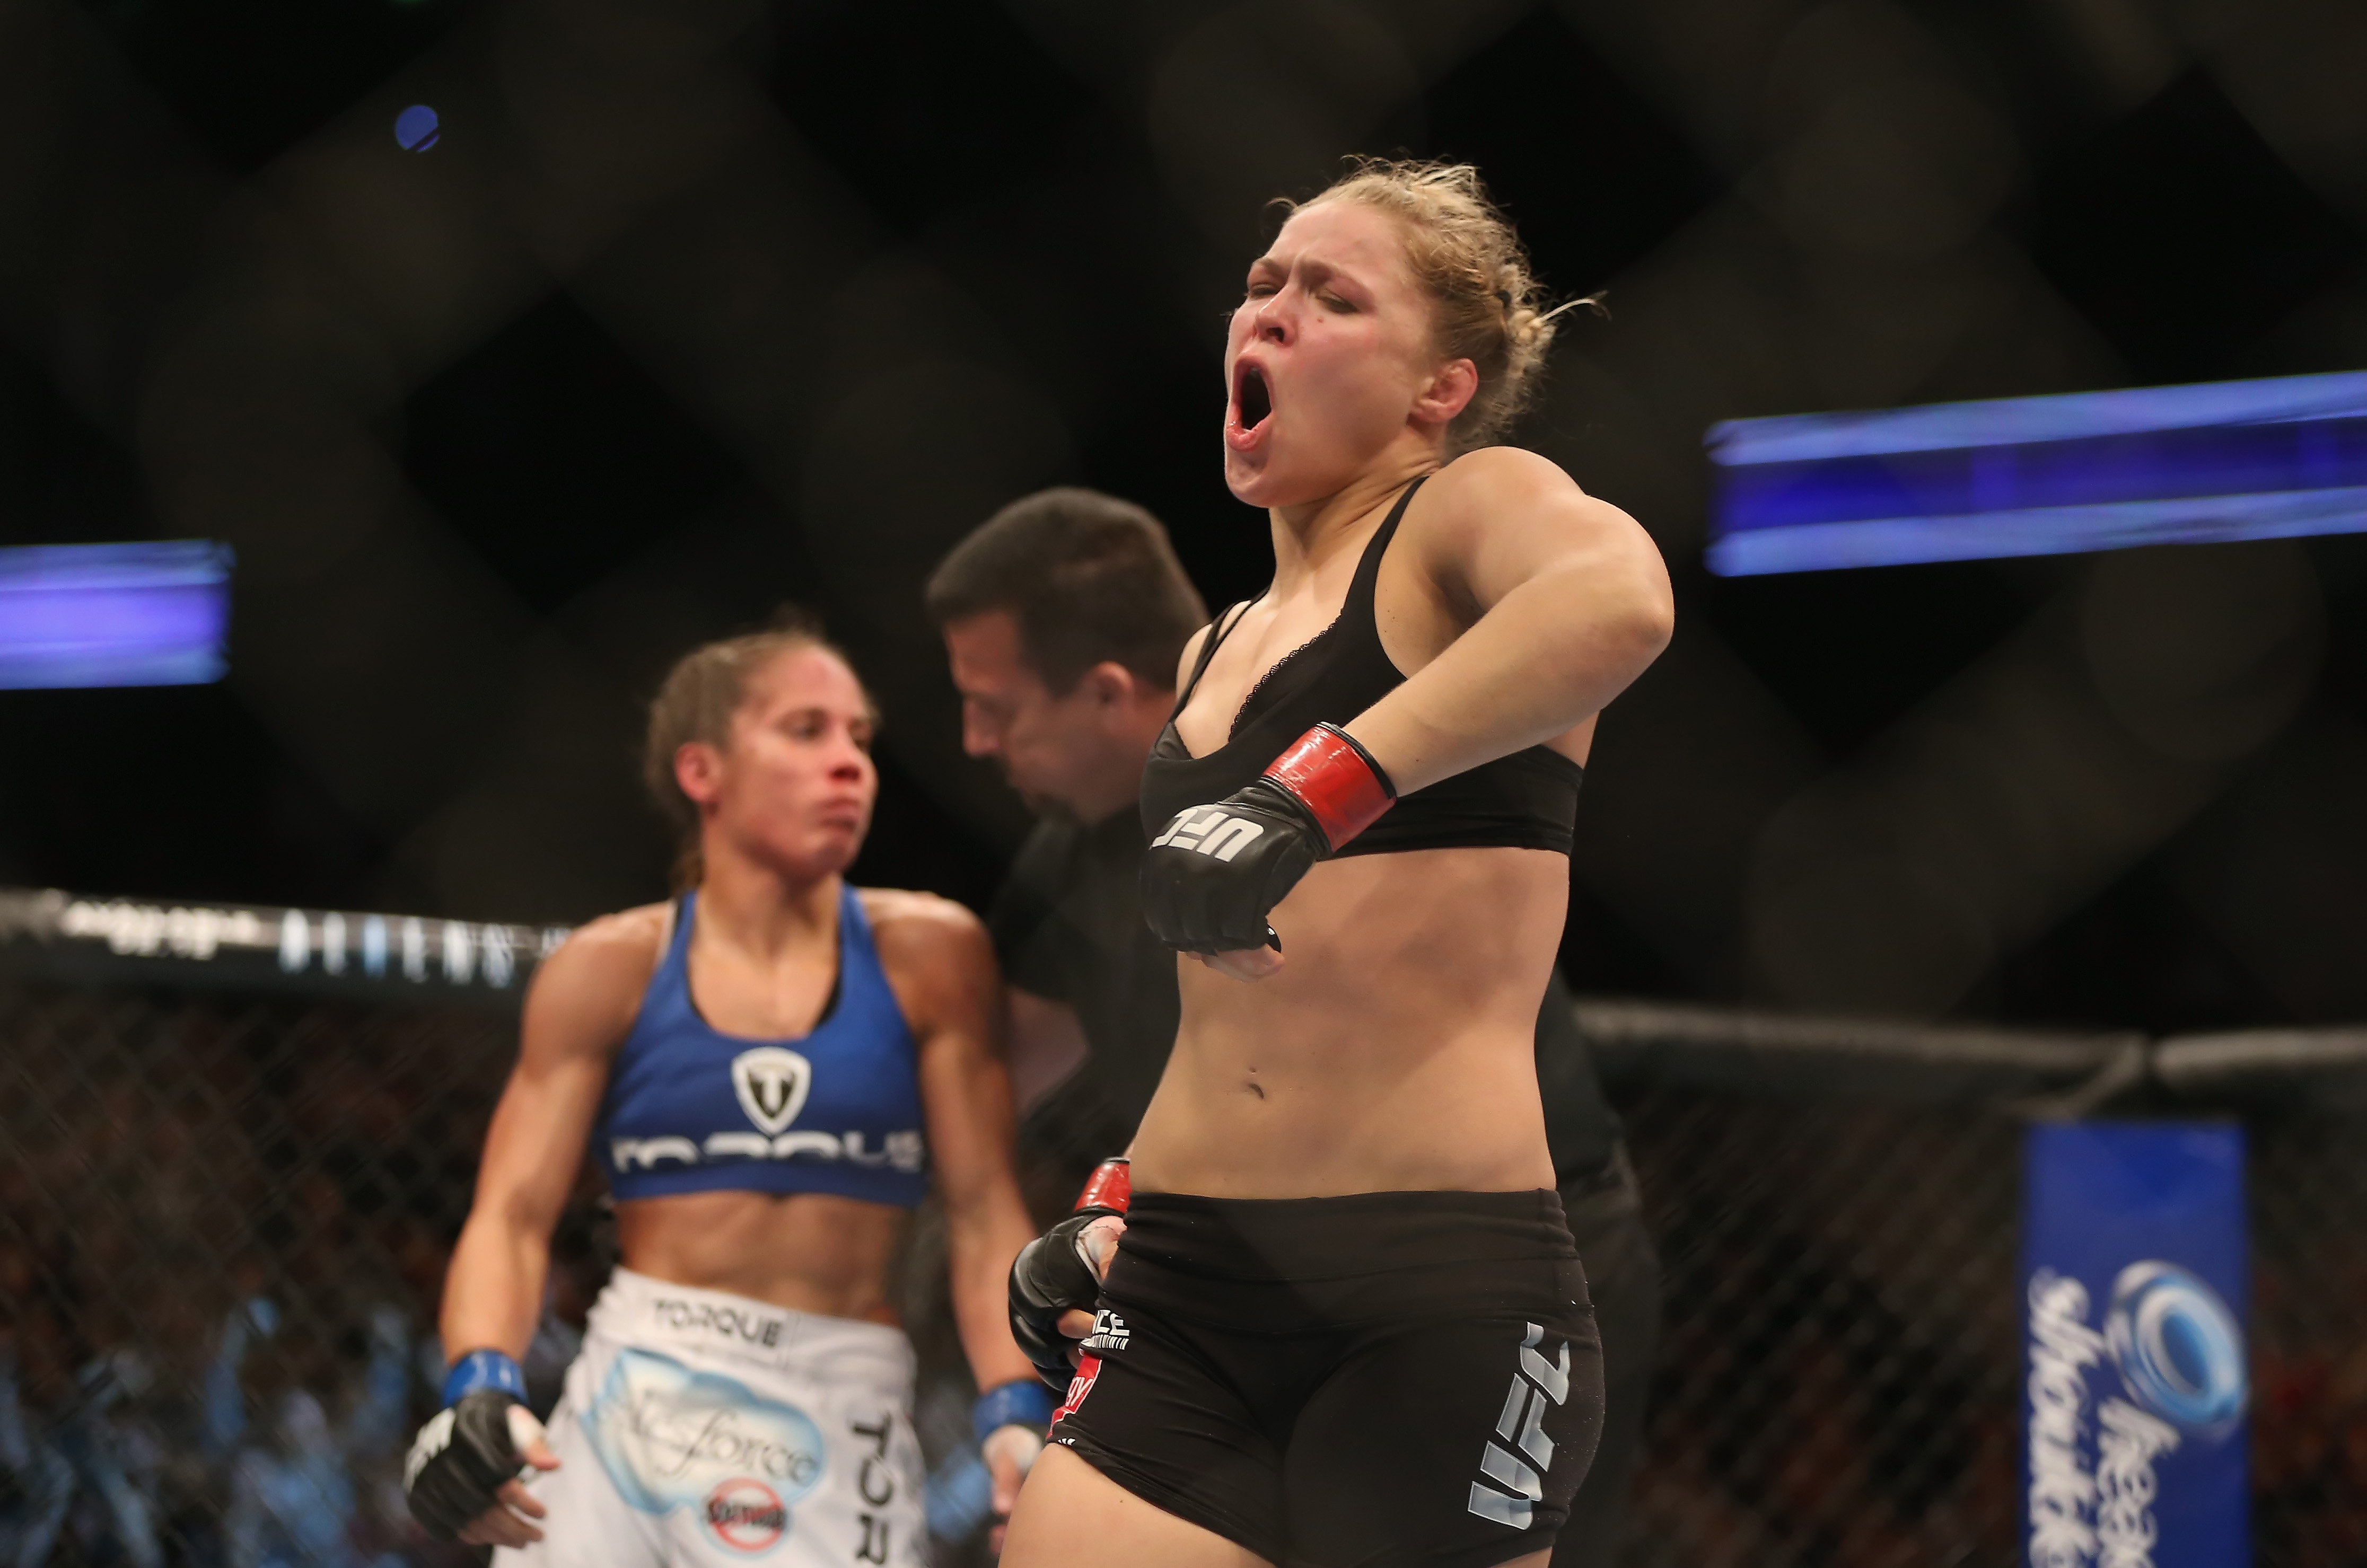 Ronda Rousey celebrates her win over Liz Carmouche. (Getty)